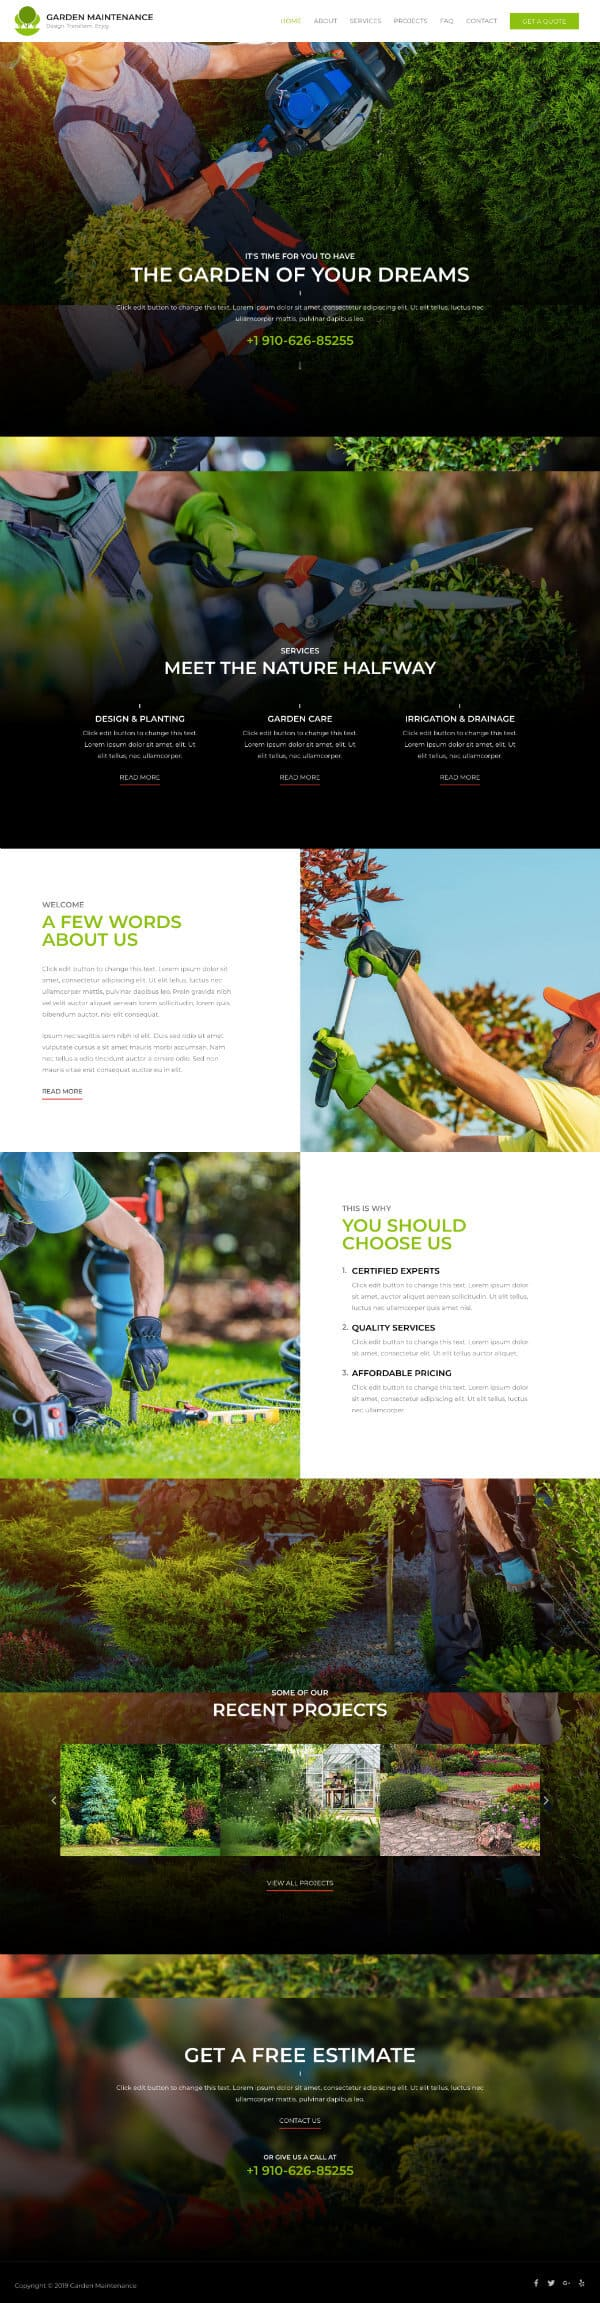 TI Gardening 600 - Task IT Virtual Solutions - Web Design Algarve